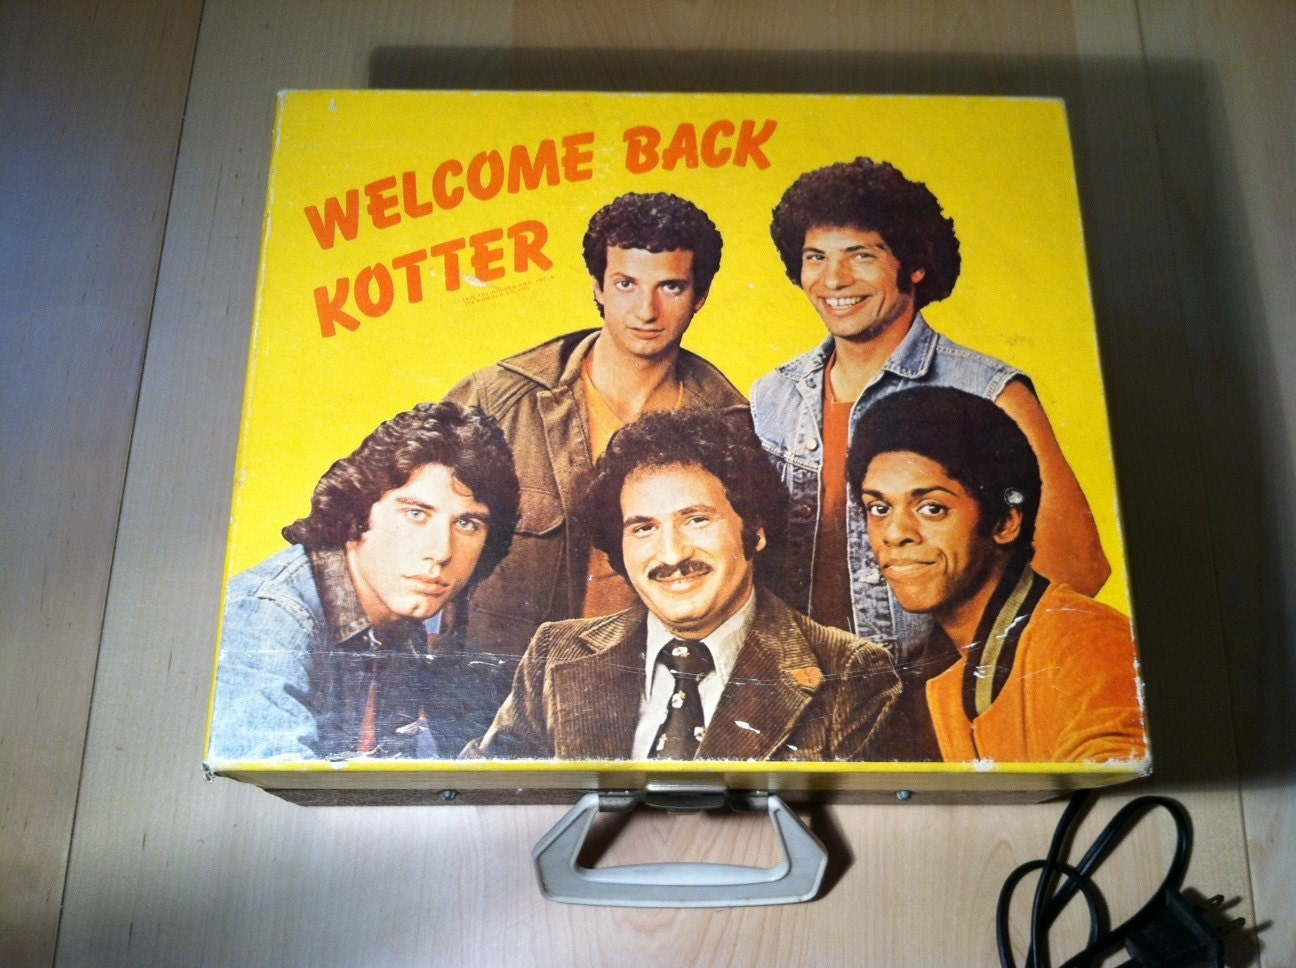 Welcome back Kotter Portable record player/ Turntable Plays